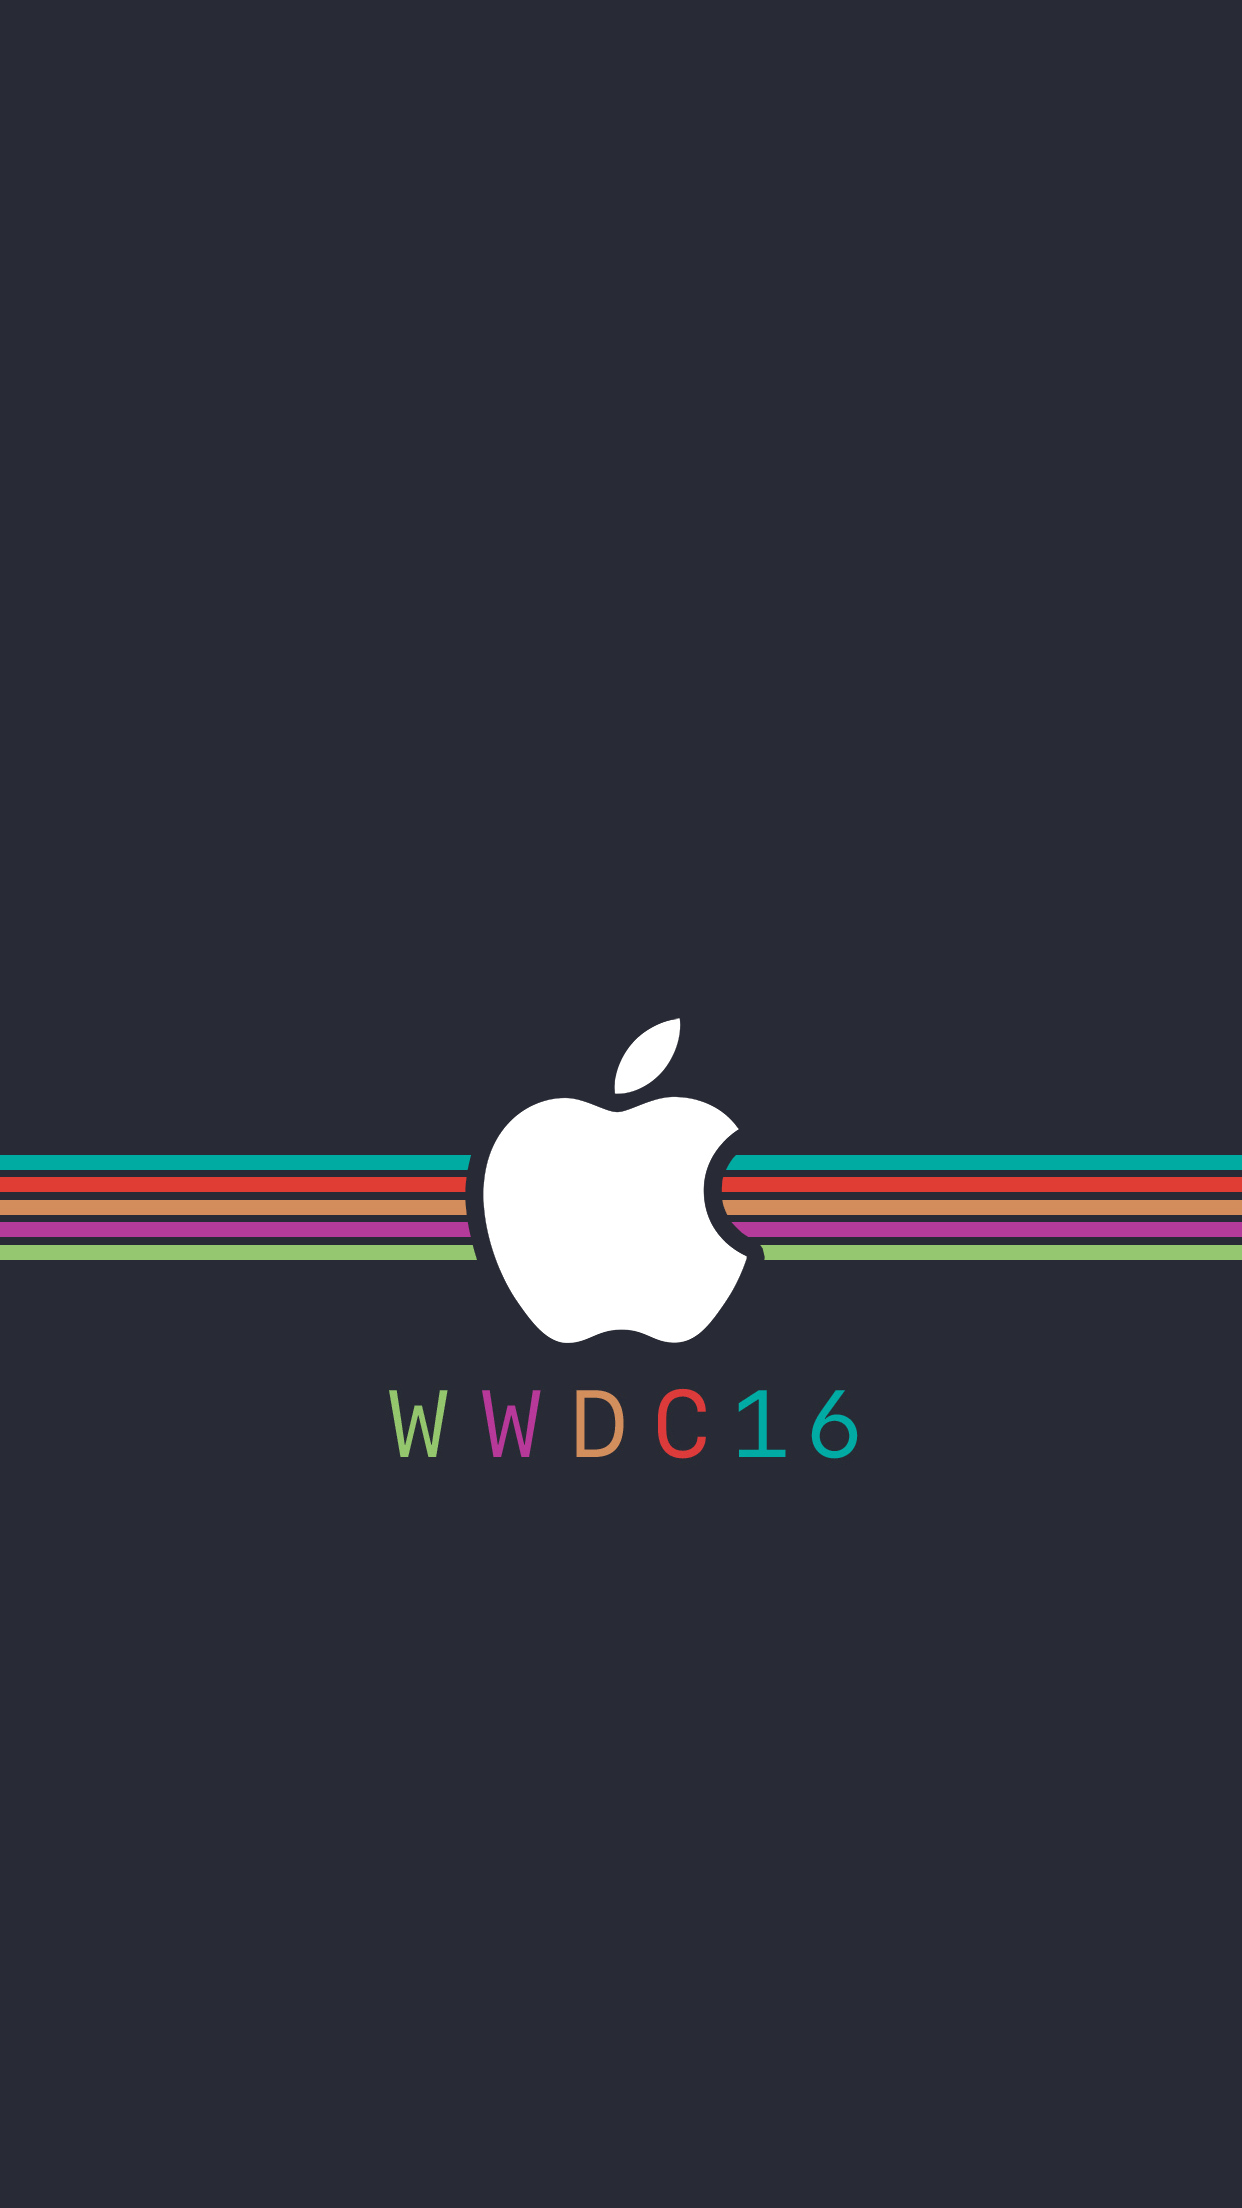 Kawaii Wallpapers Cute Even More Great Wwdc 2016 Wallpapers